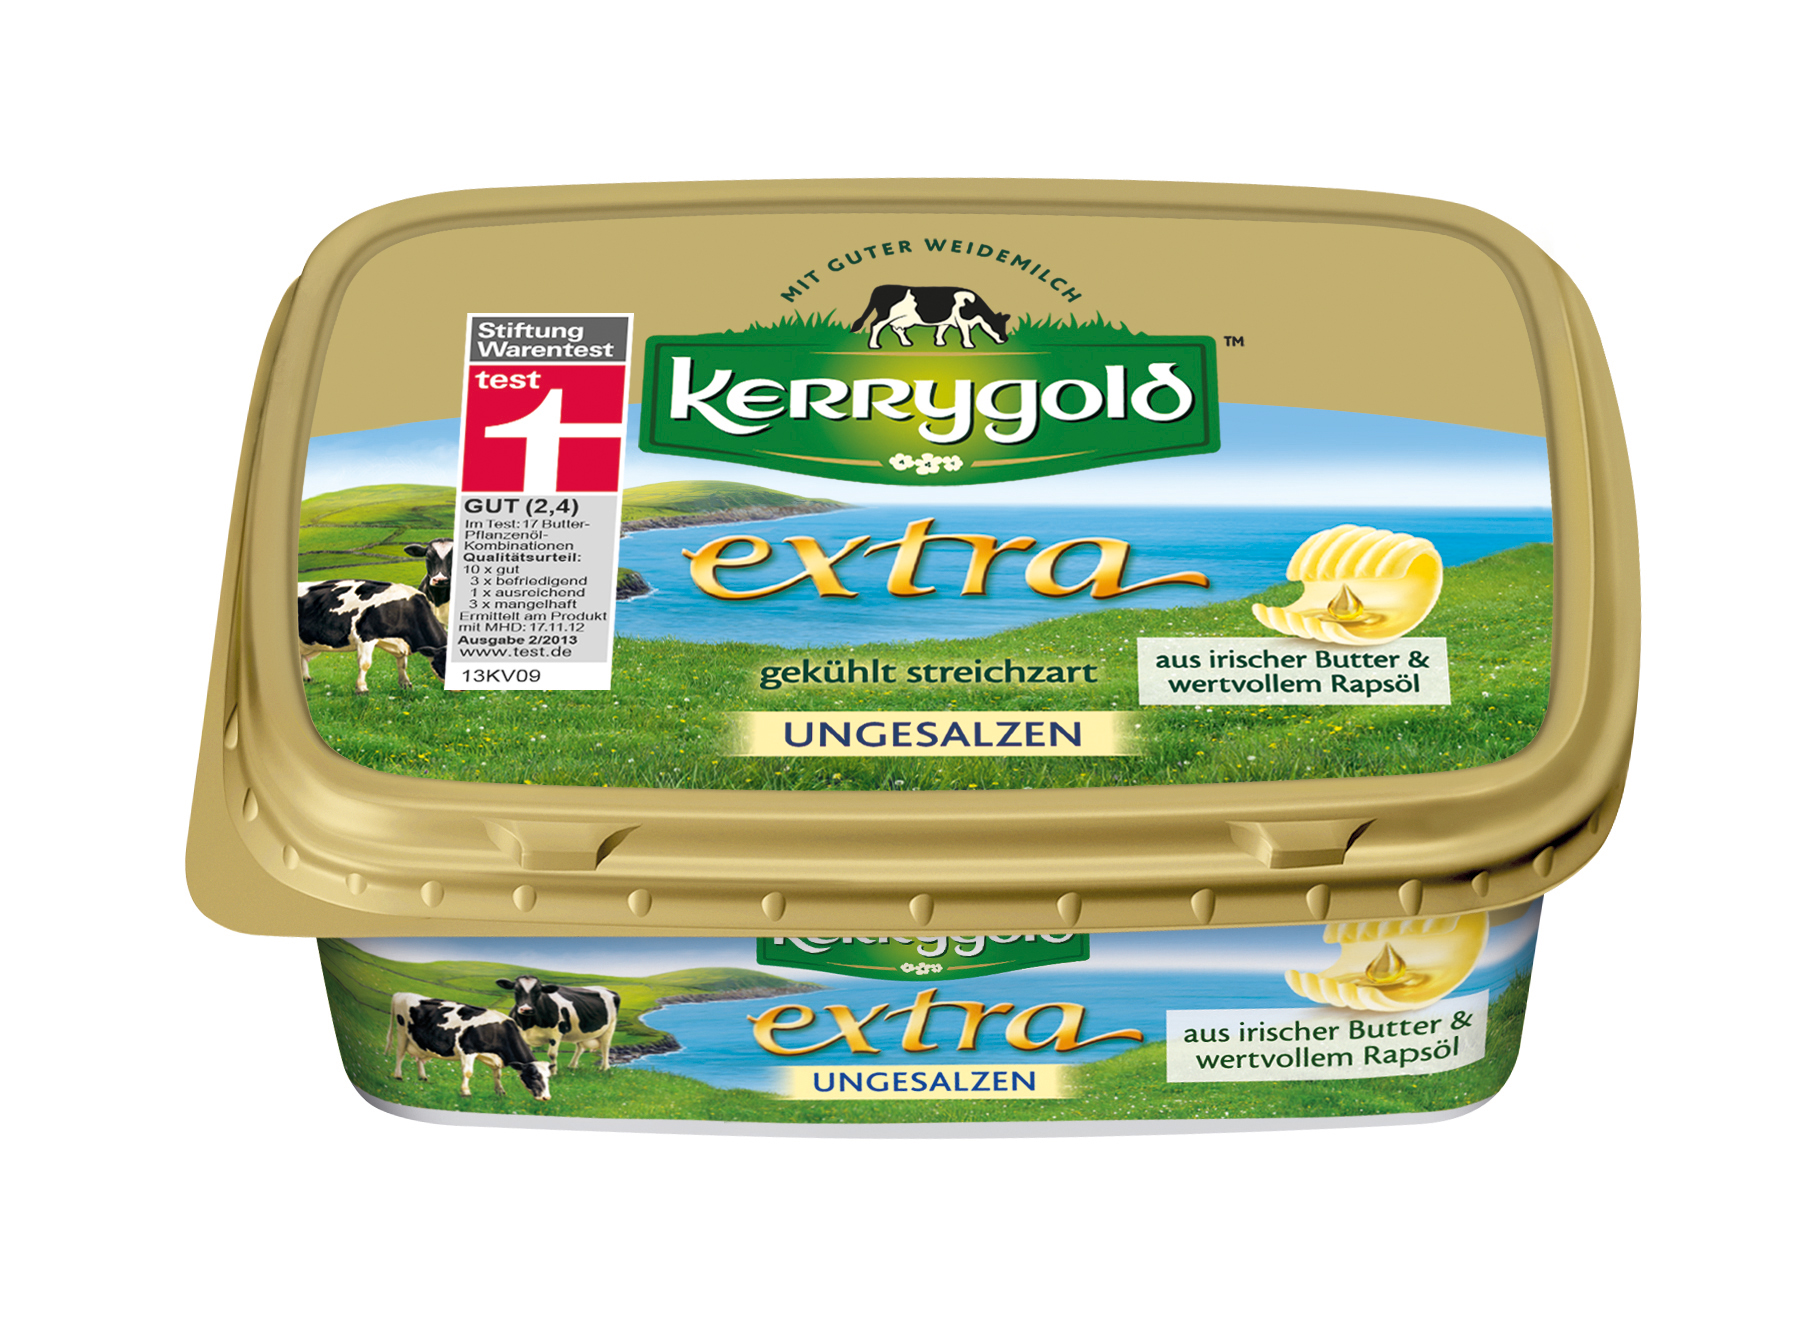 kerrygold extra ungesalzen 250g 250 gramm idb deutschland gmbh butter butterersatz gek hlt. Black Bedroom Furniture Sets. Home Design Ideas